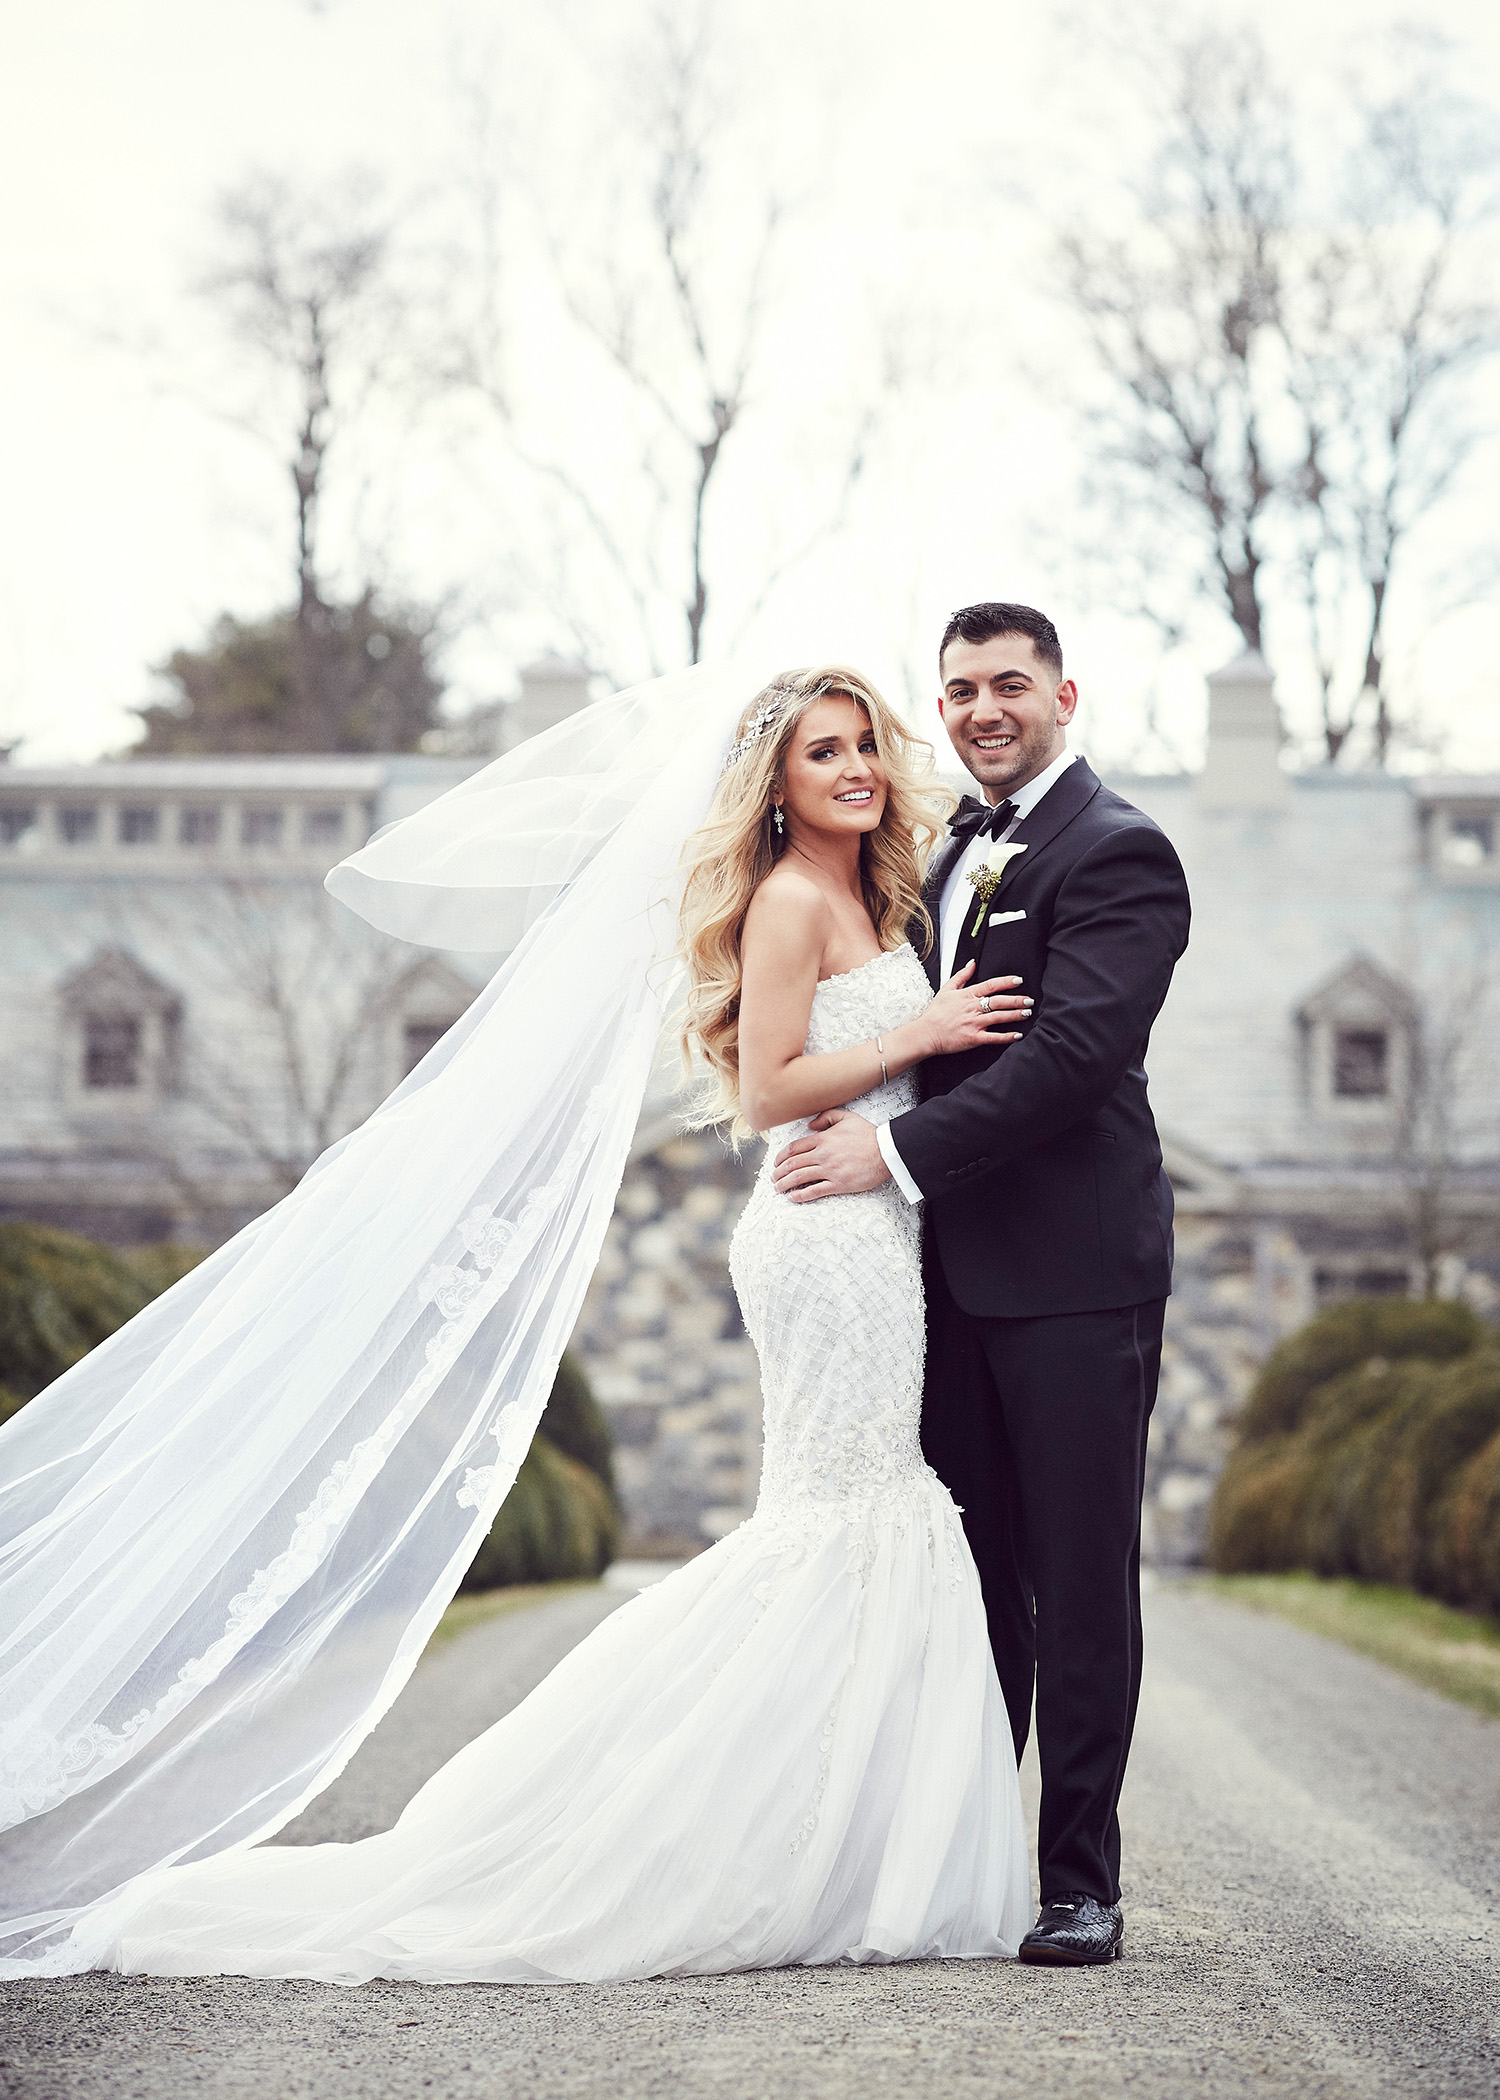 A Glamorous Spring Wedding Full of Albanian Traditions